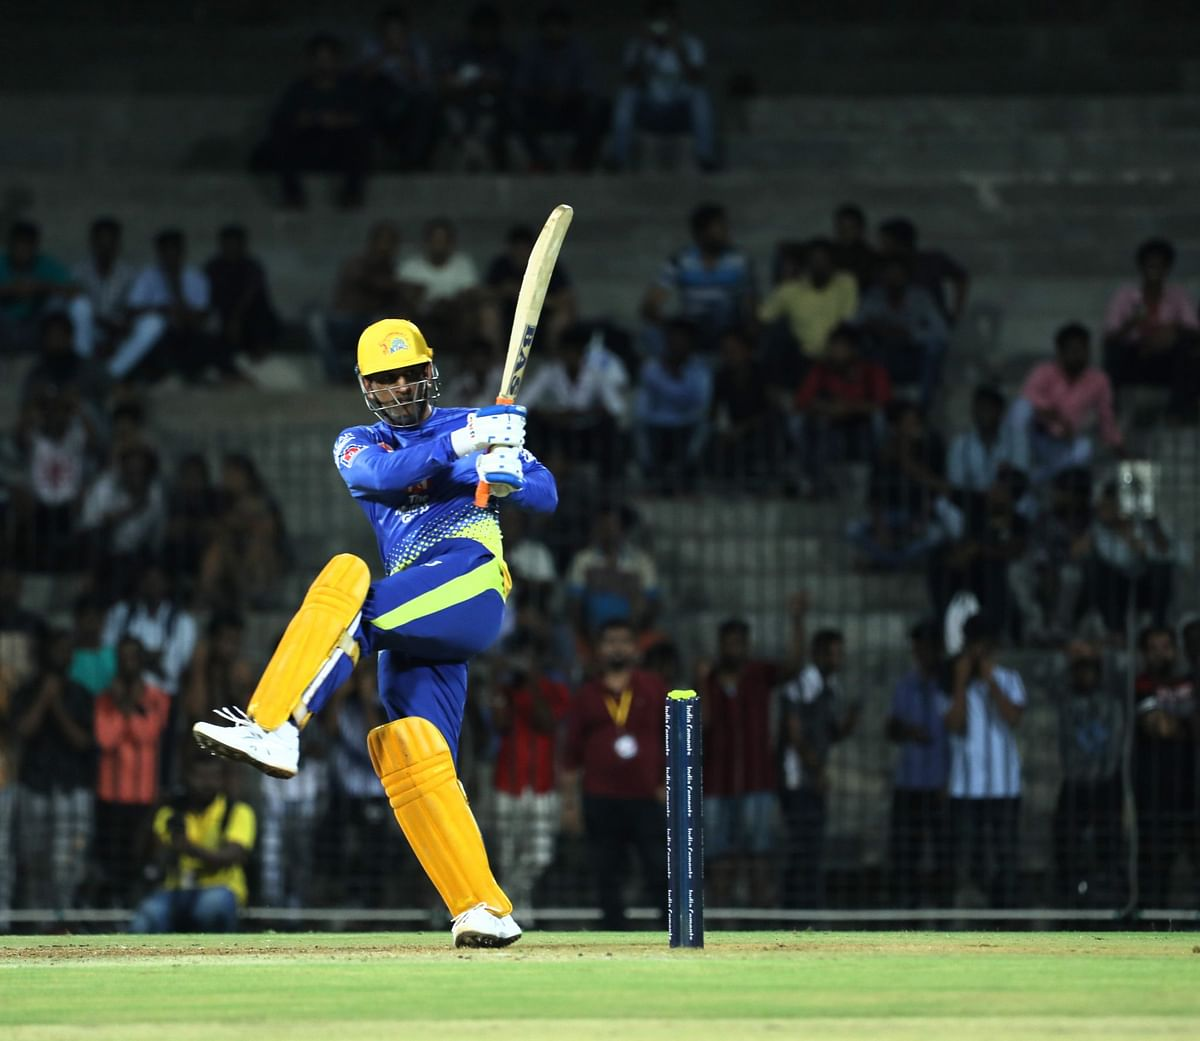 MS Dhoni smashed a blistering 123 of 91 deliveries in a CSK practice match, before the practice sessions got suspended in March due to the coronavirus outbreak